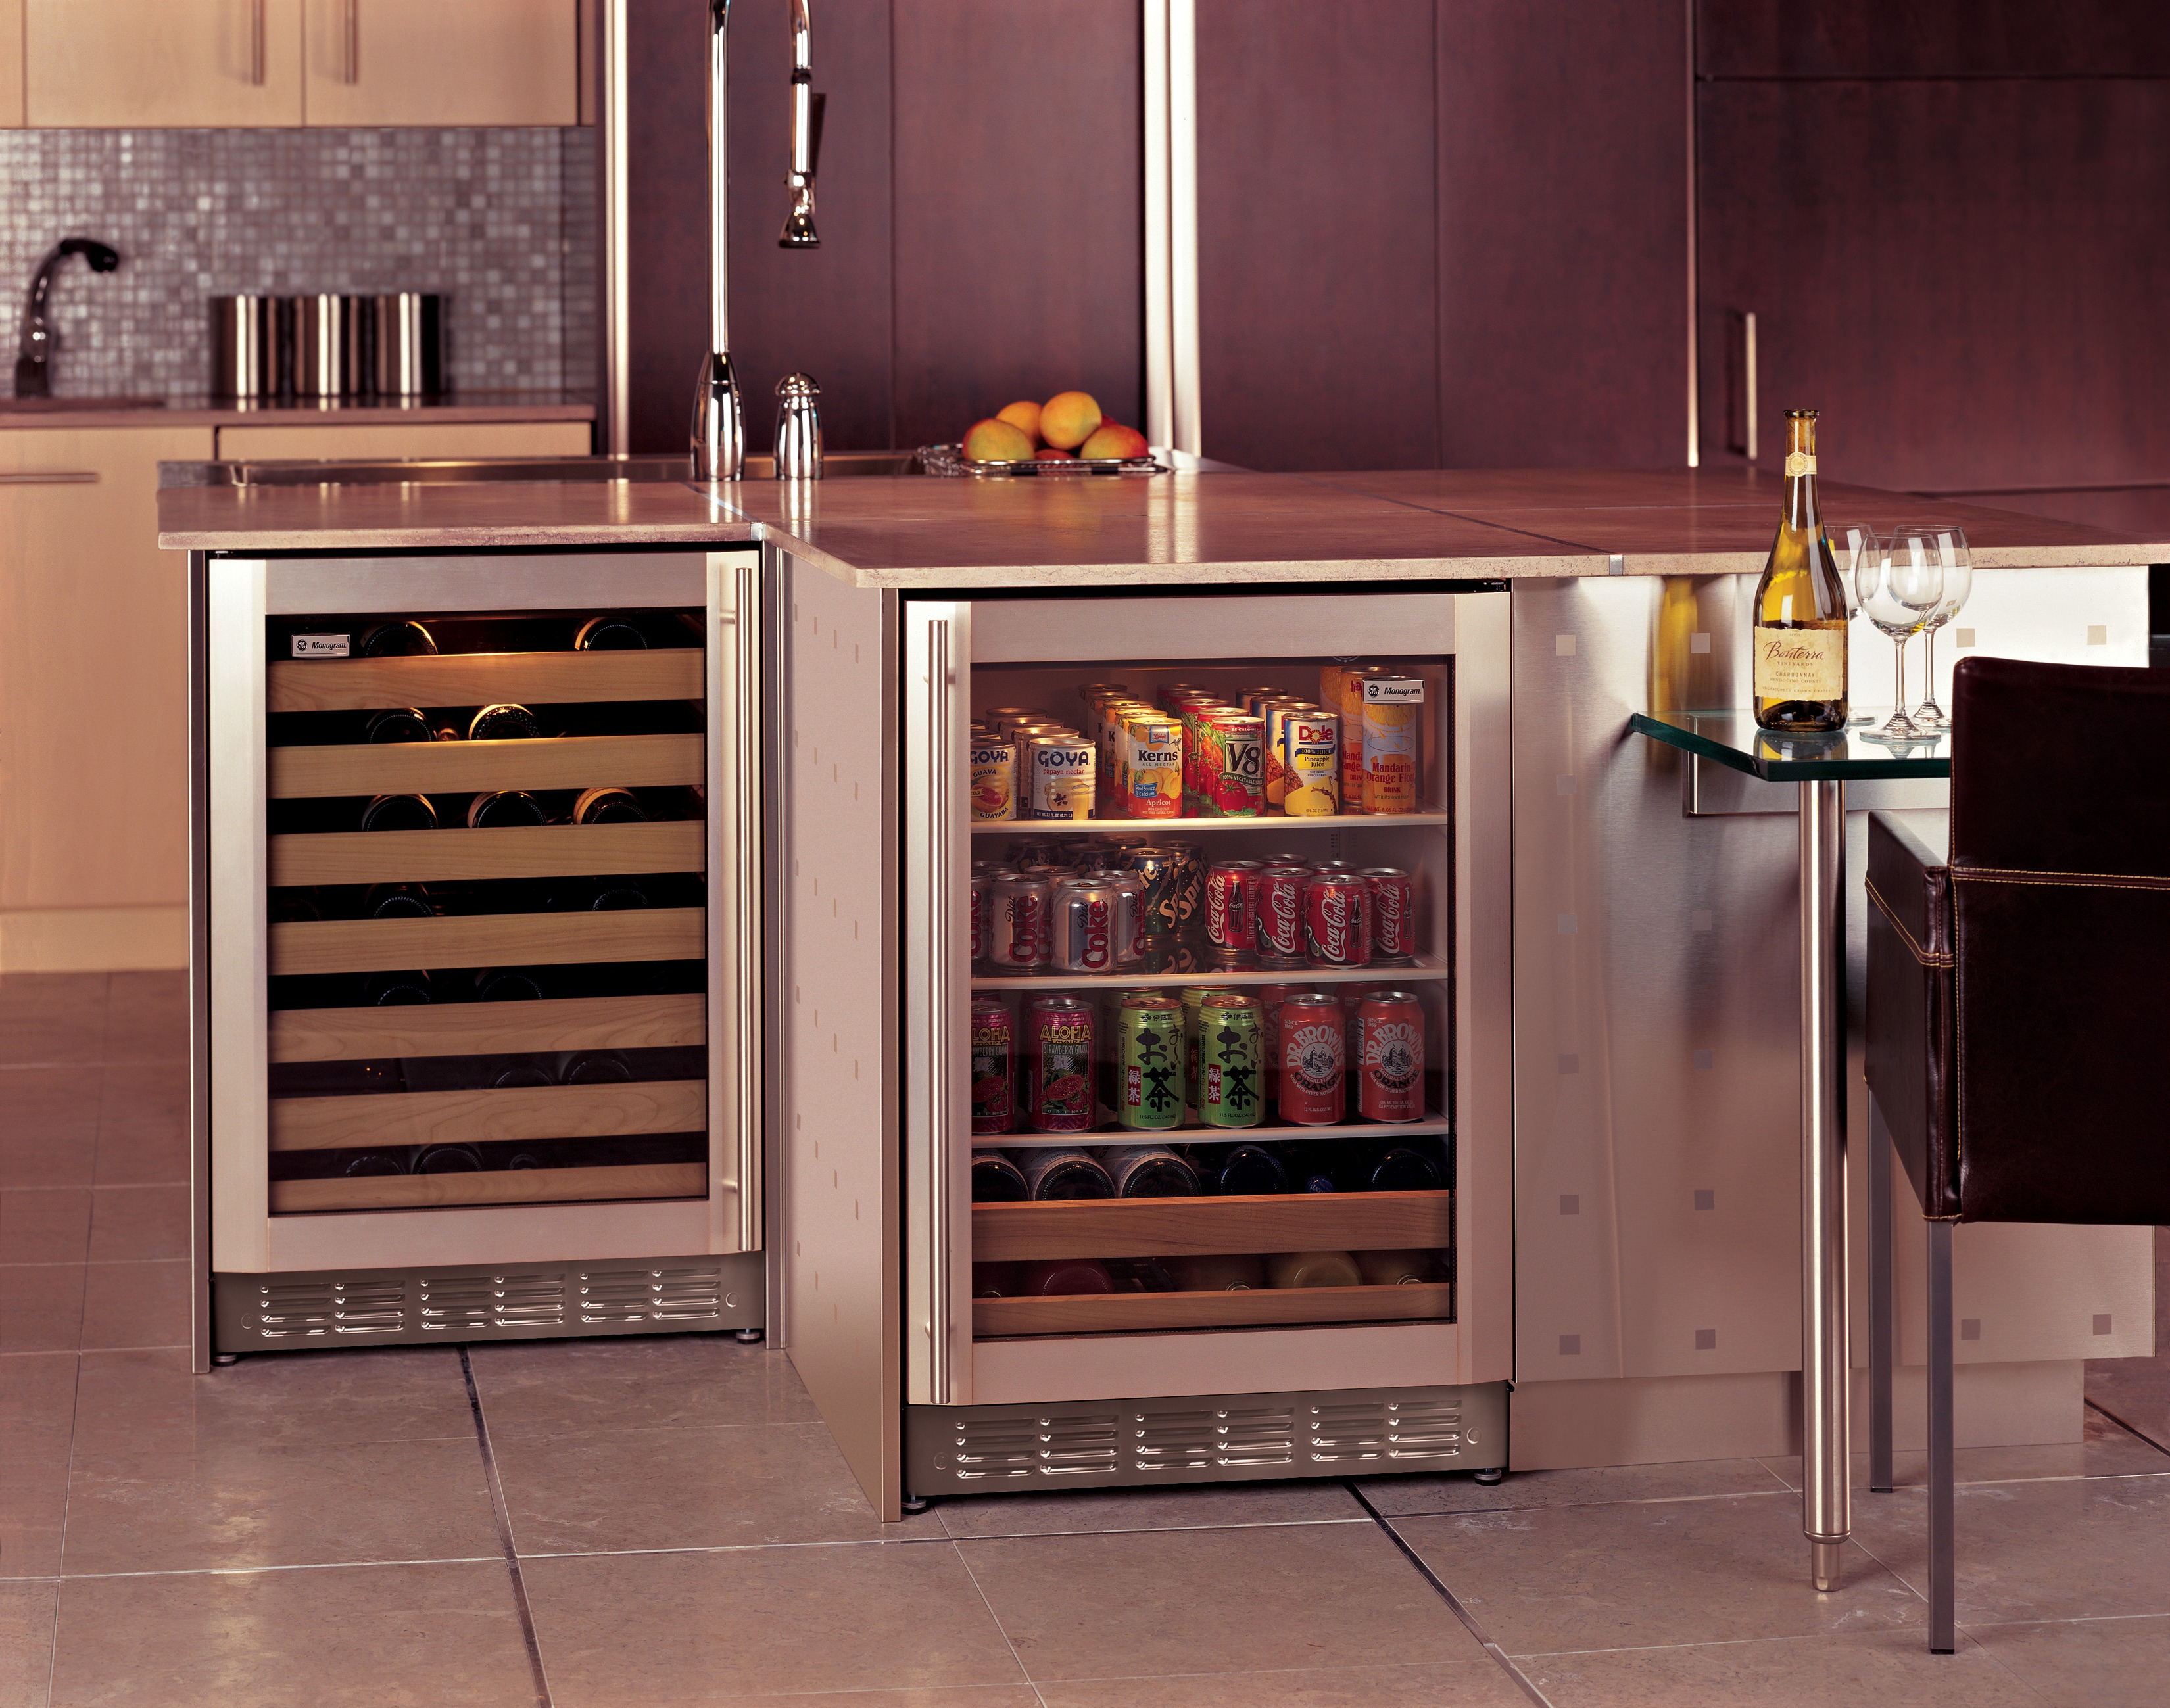 Zdwc240nbs Ge Monogram 174 Stainless Steel Wine Chiller